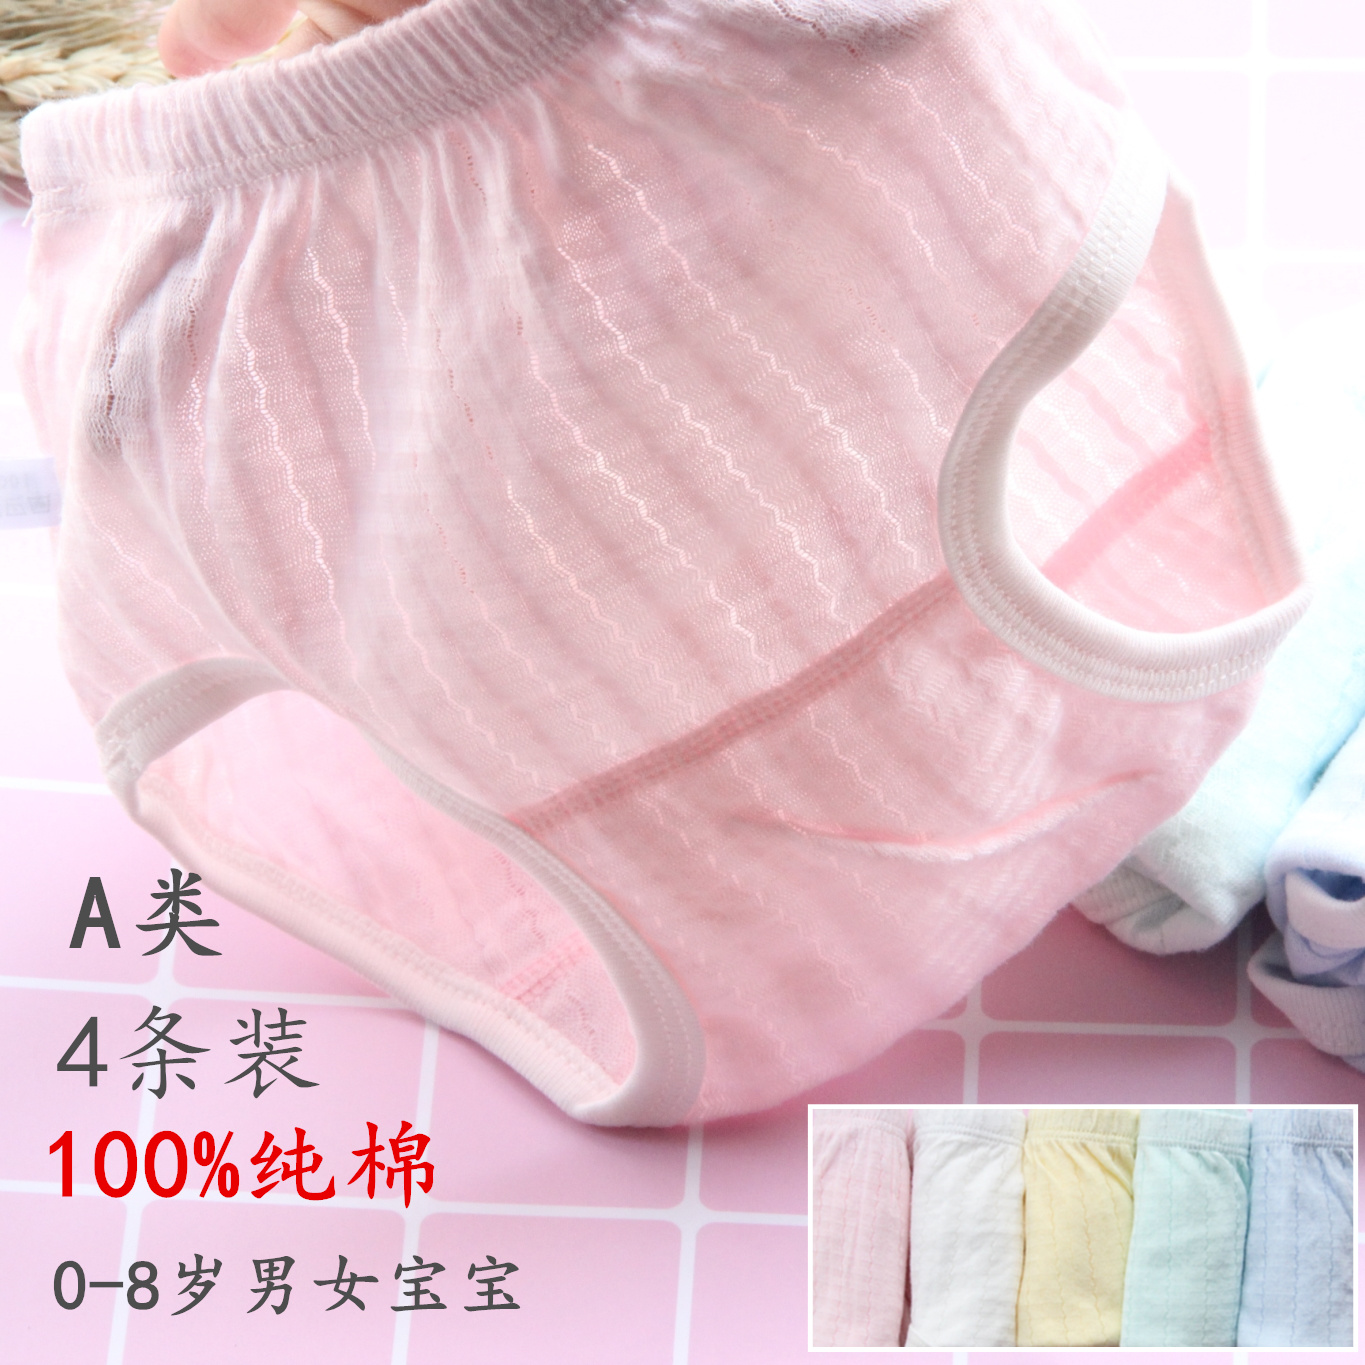 underpants cotton Weijia baby Girls mesh 4 pack boys mesh 4 pack nubao 2 White 2 pink mesh bow girls cartoon 4 pack boys cartoon 4 Pack Cotton 100% summer neutral Under 1 year old 1-3 years old 3-5 years old 5-7 years old 7-9 years old Class A